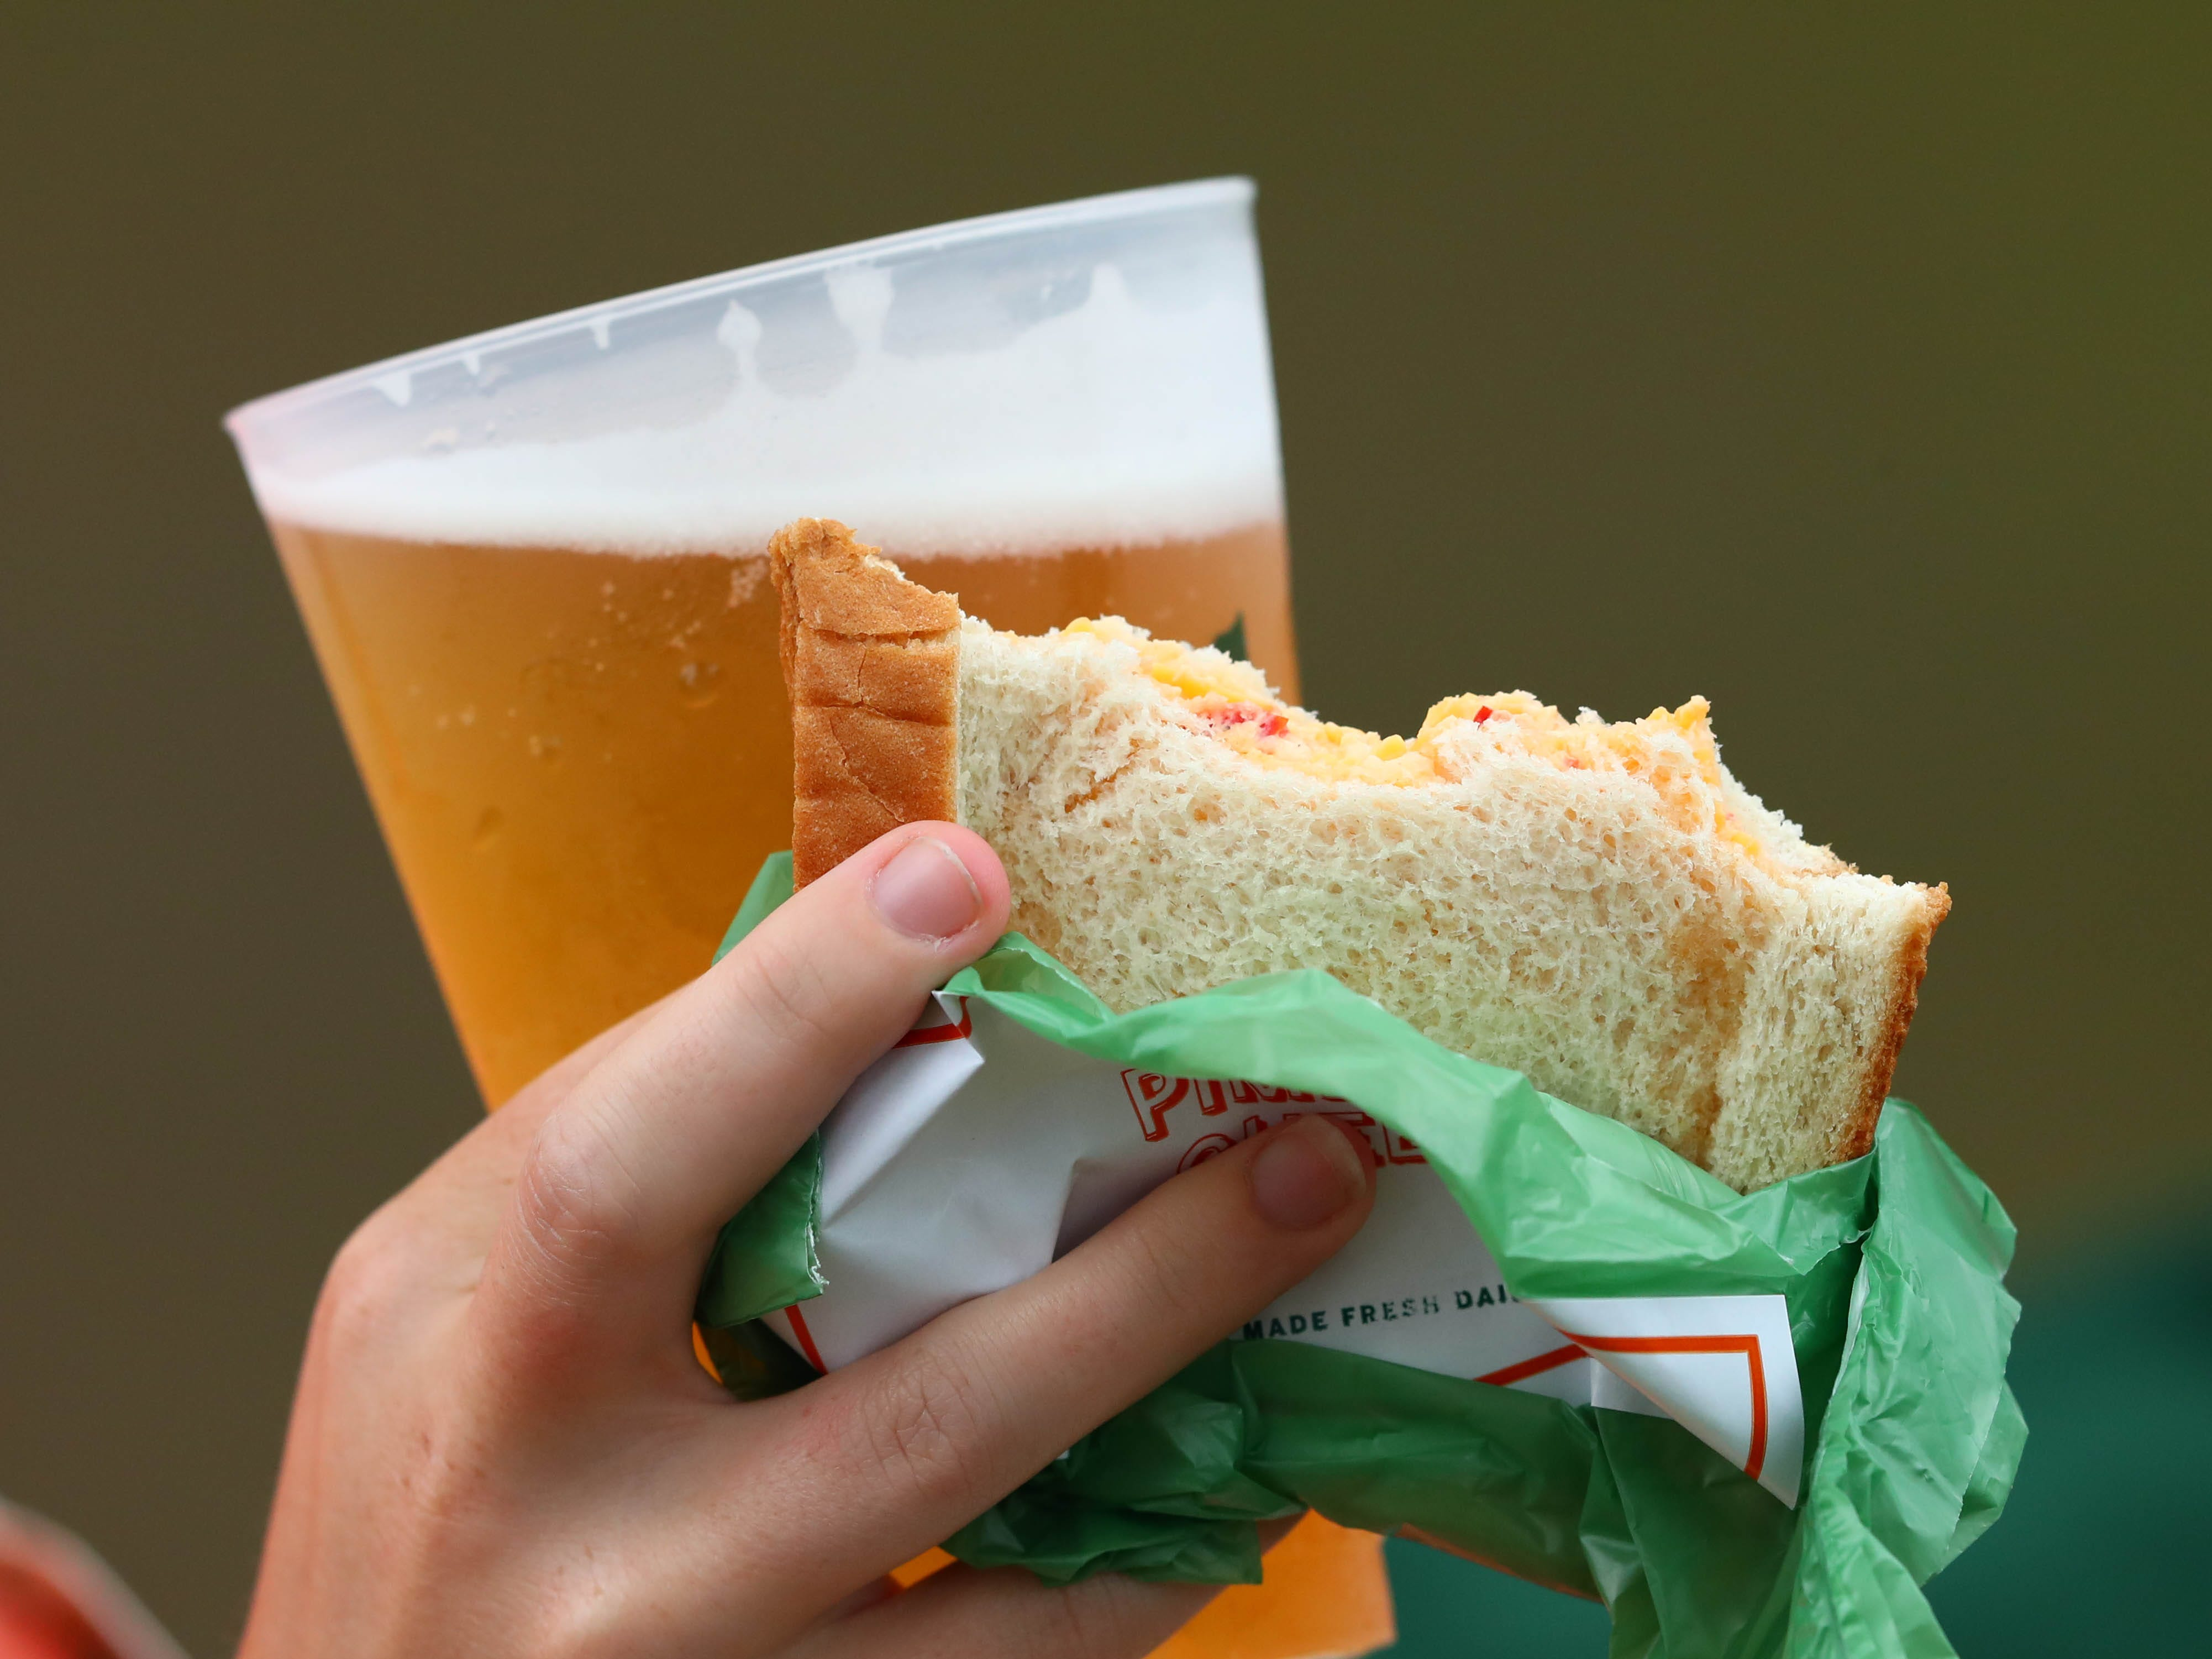 A patron holds a pimento cheese sandwich and beer during the third round of the Masters.